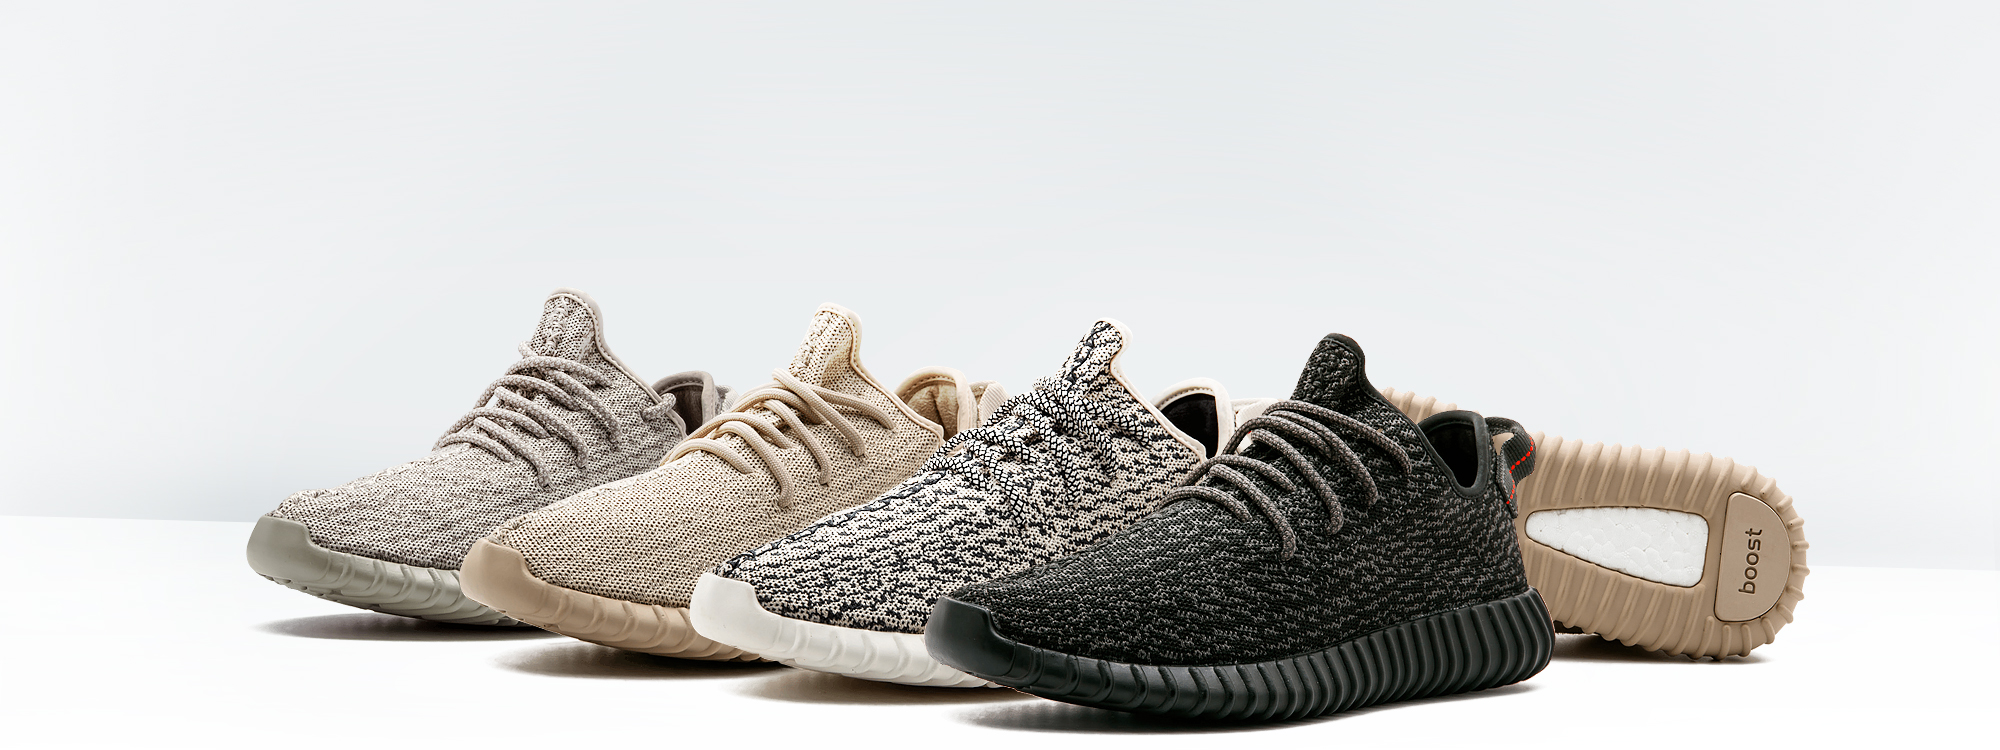 Adidas Yeezy Boost  350 cute sneakers for fitness